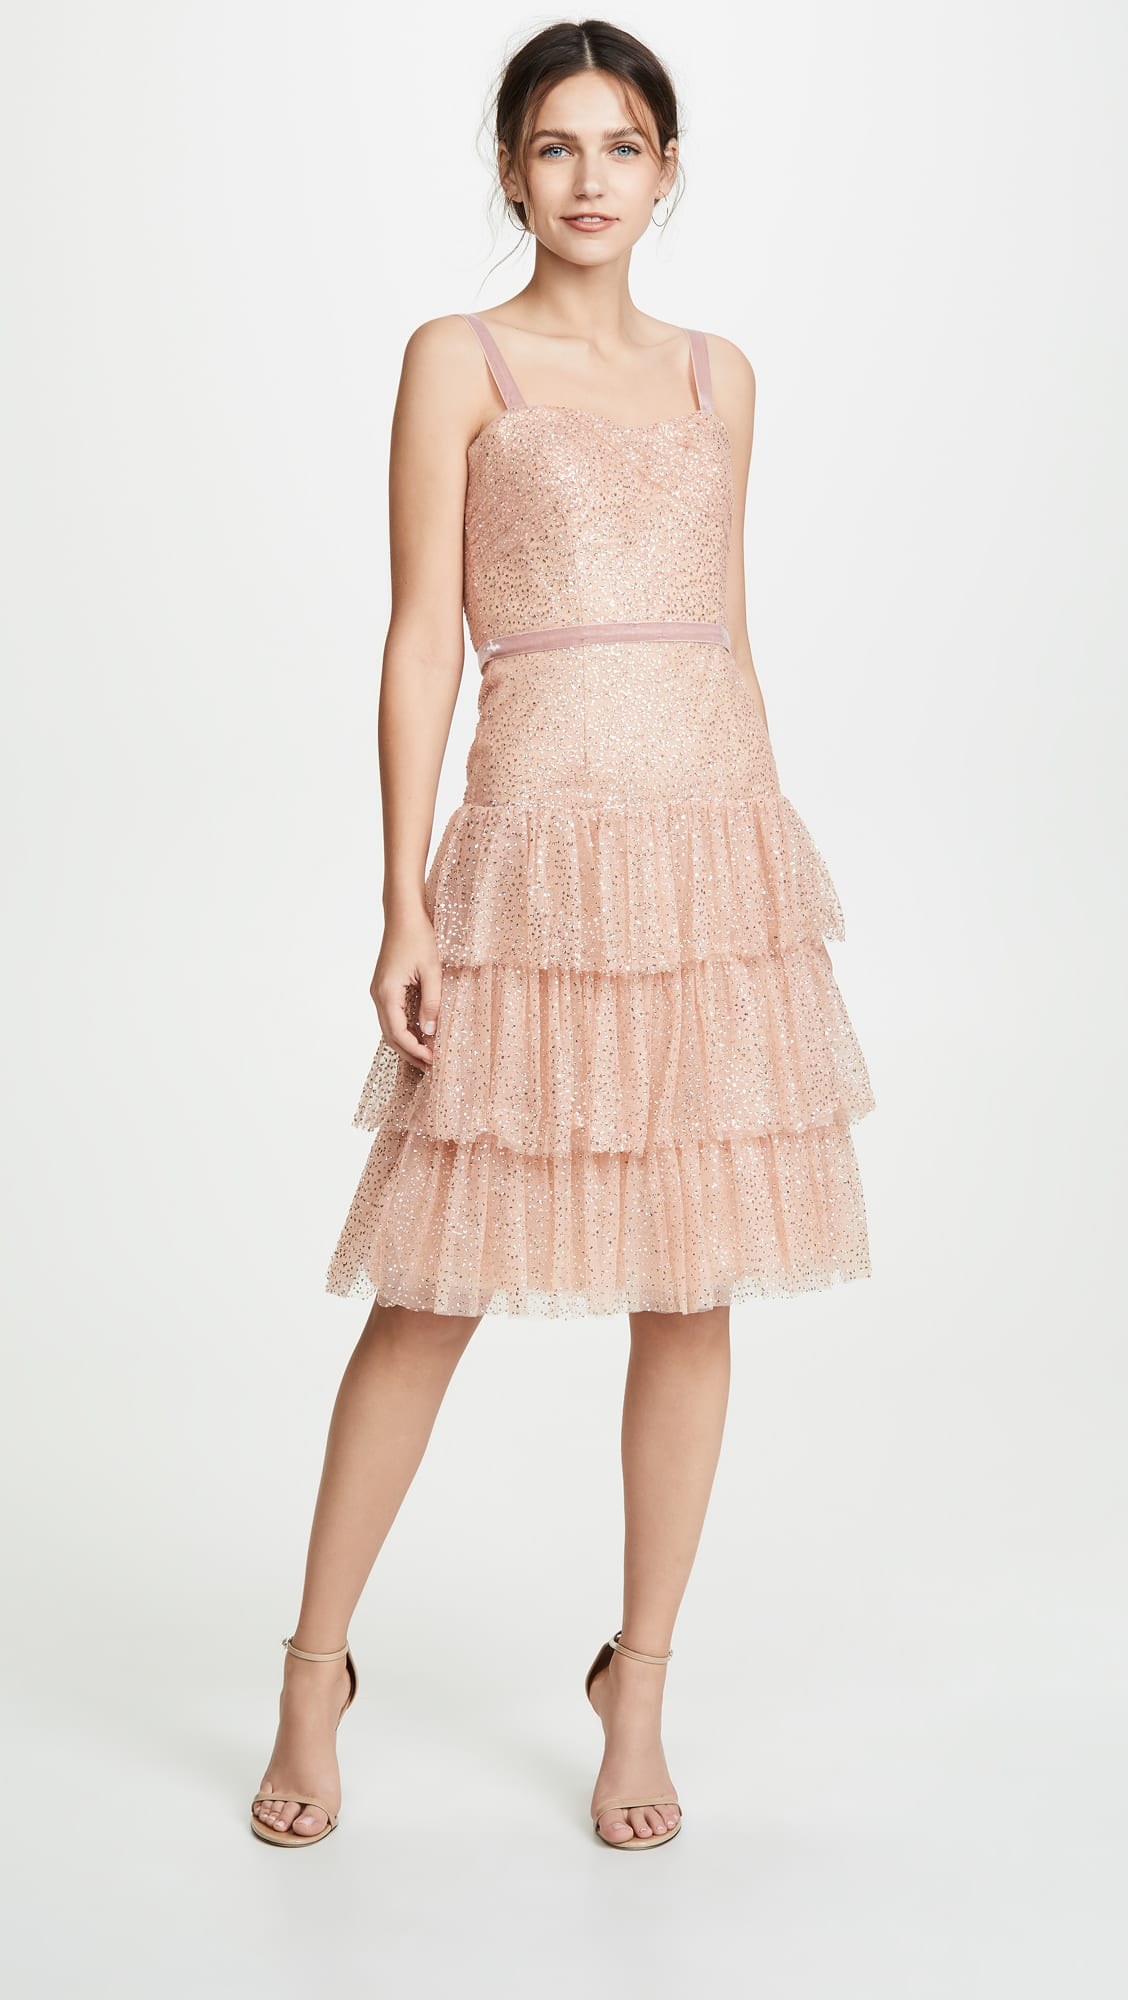 Marchesa Notte Glitter Tulle Cocktail Dress shopbop